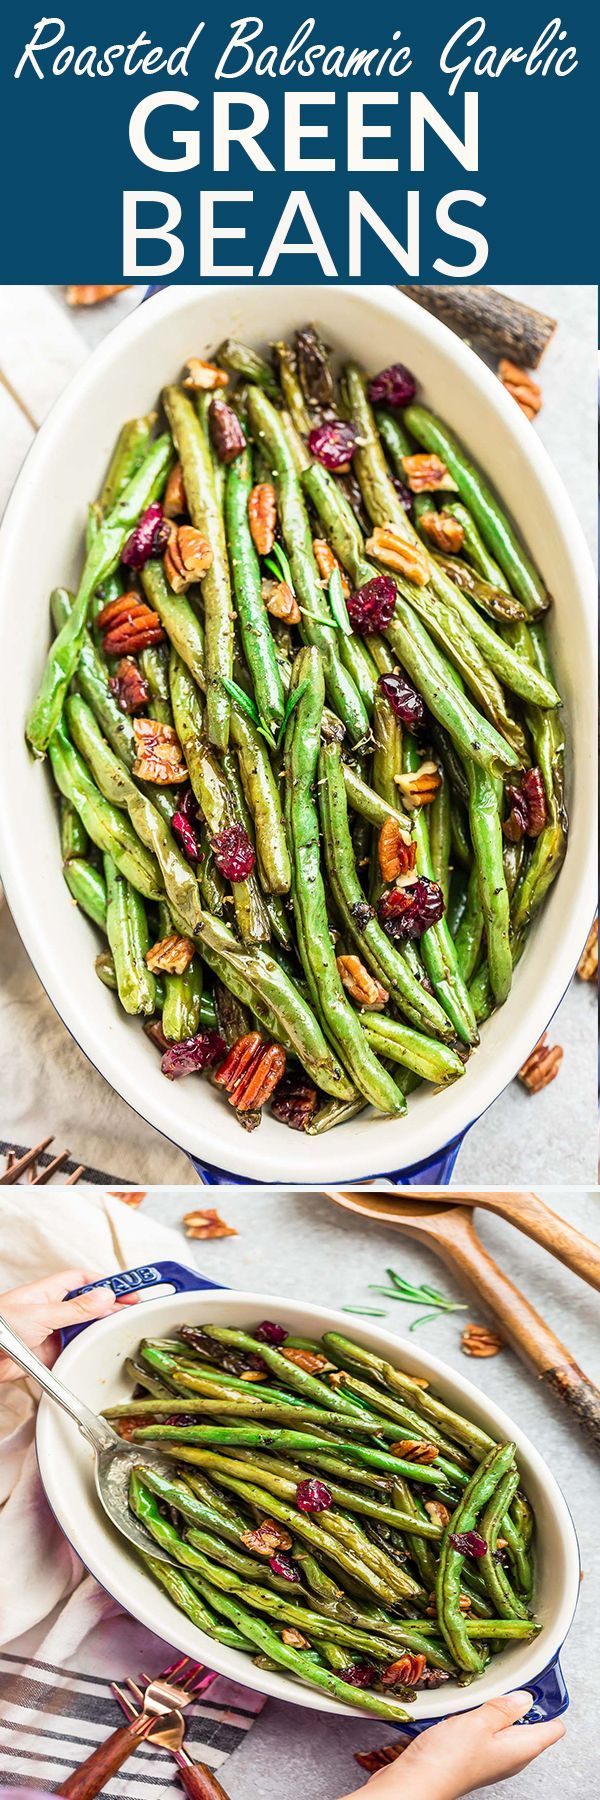 Roasted Green Beans with garlic & balsamic - the perfect simple side dish. Best of all, an easy recipe for busy weeknights or fancy enough for holiday meals